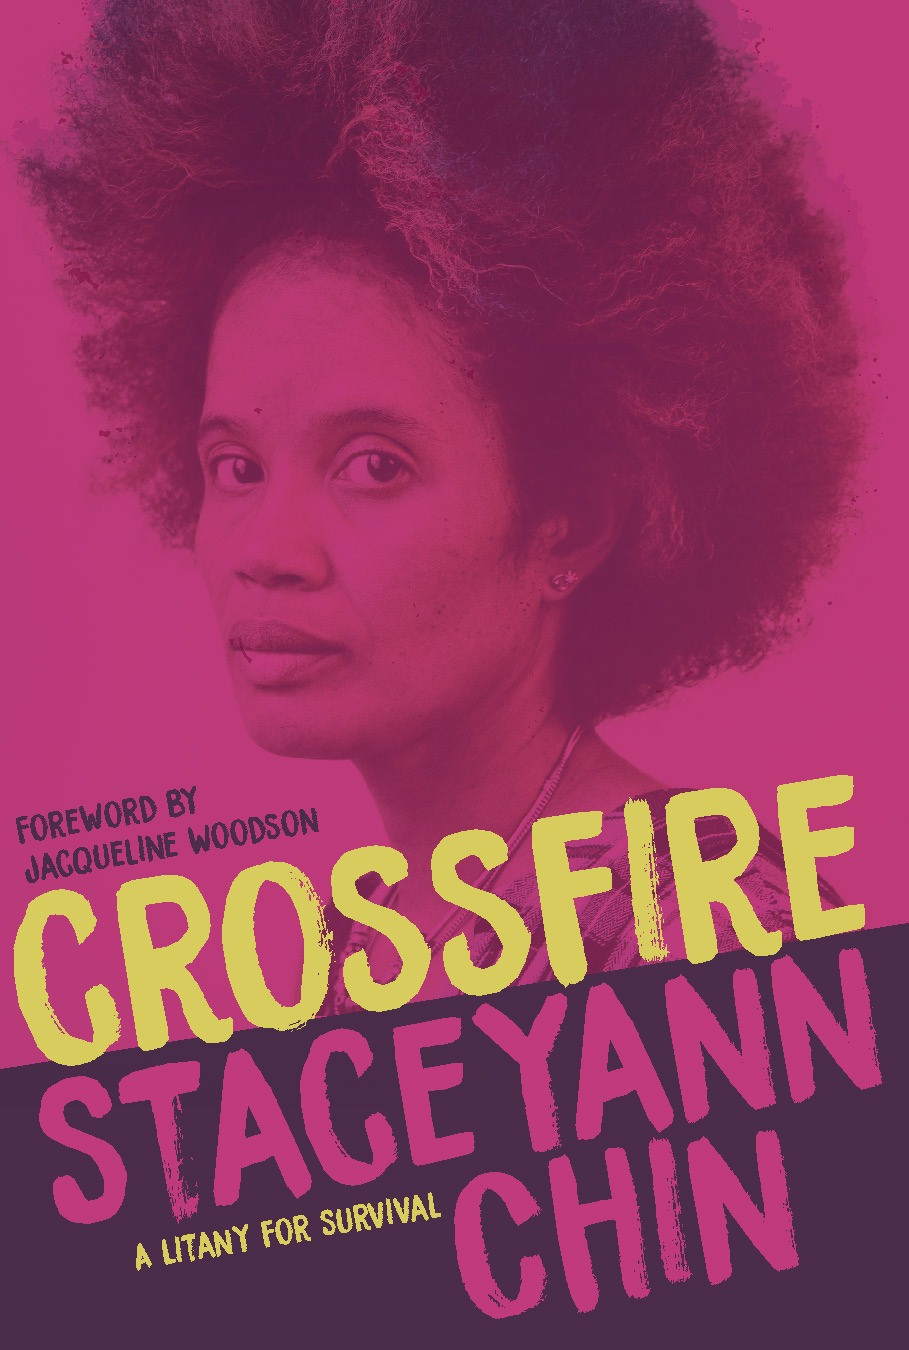 Crossfire: A Litany for Survival Staceyann Chin (Author)  Jacqueline Woodson (Foreword by) the books slut friday debreif thebookslut